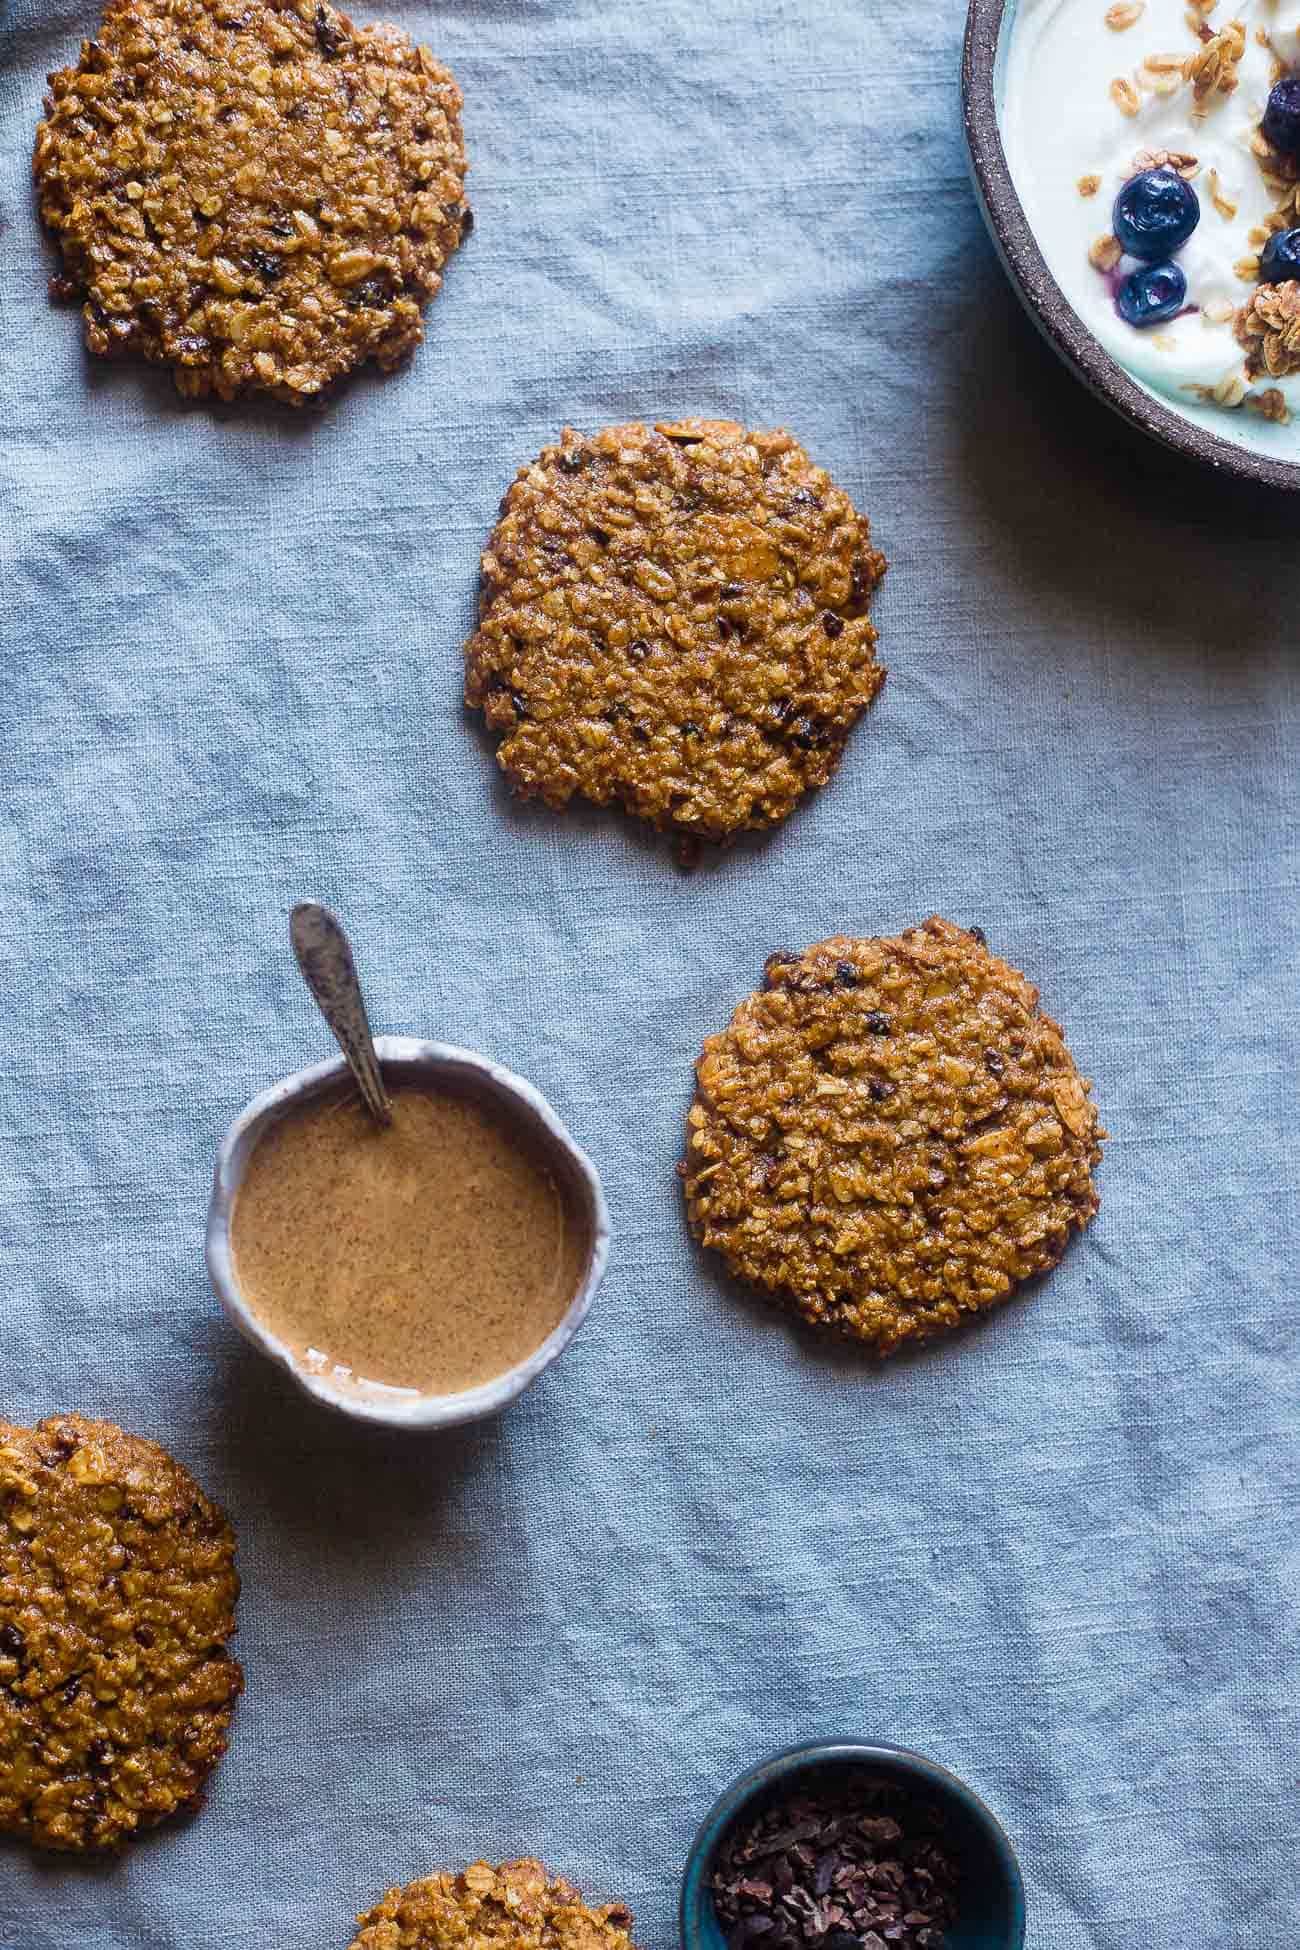 Gluten Free Granola Oatmeal Breakfast Cookies - These kid-friendly healthy breakfast cookies use granola for added crunch! They're gluten and egg free, made in one bowl and are great for busy mornings!   Foodfaithfitness.com   @FoodFaithFit